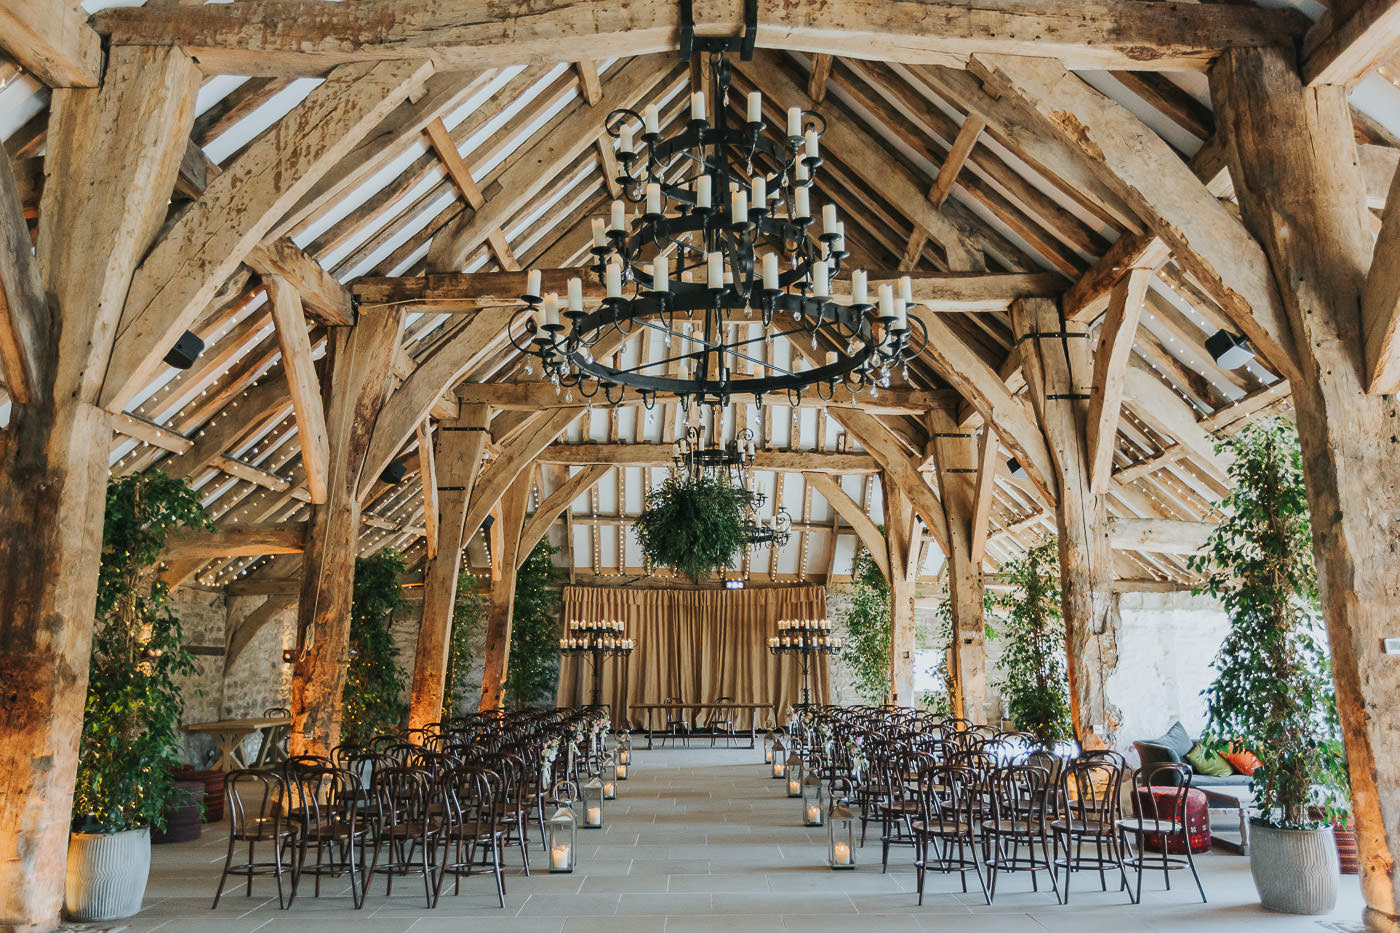 Tithe Barn - Laura Calderwood Photography - 29.3.19 - Mr & Mrs Lancaster290319-41.jpg